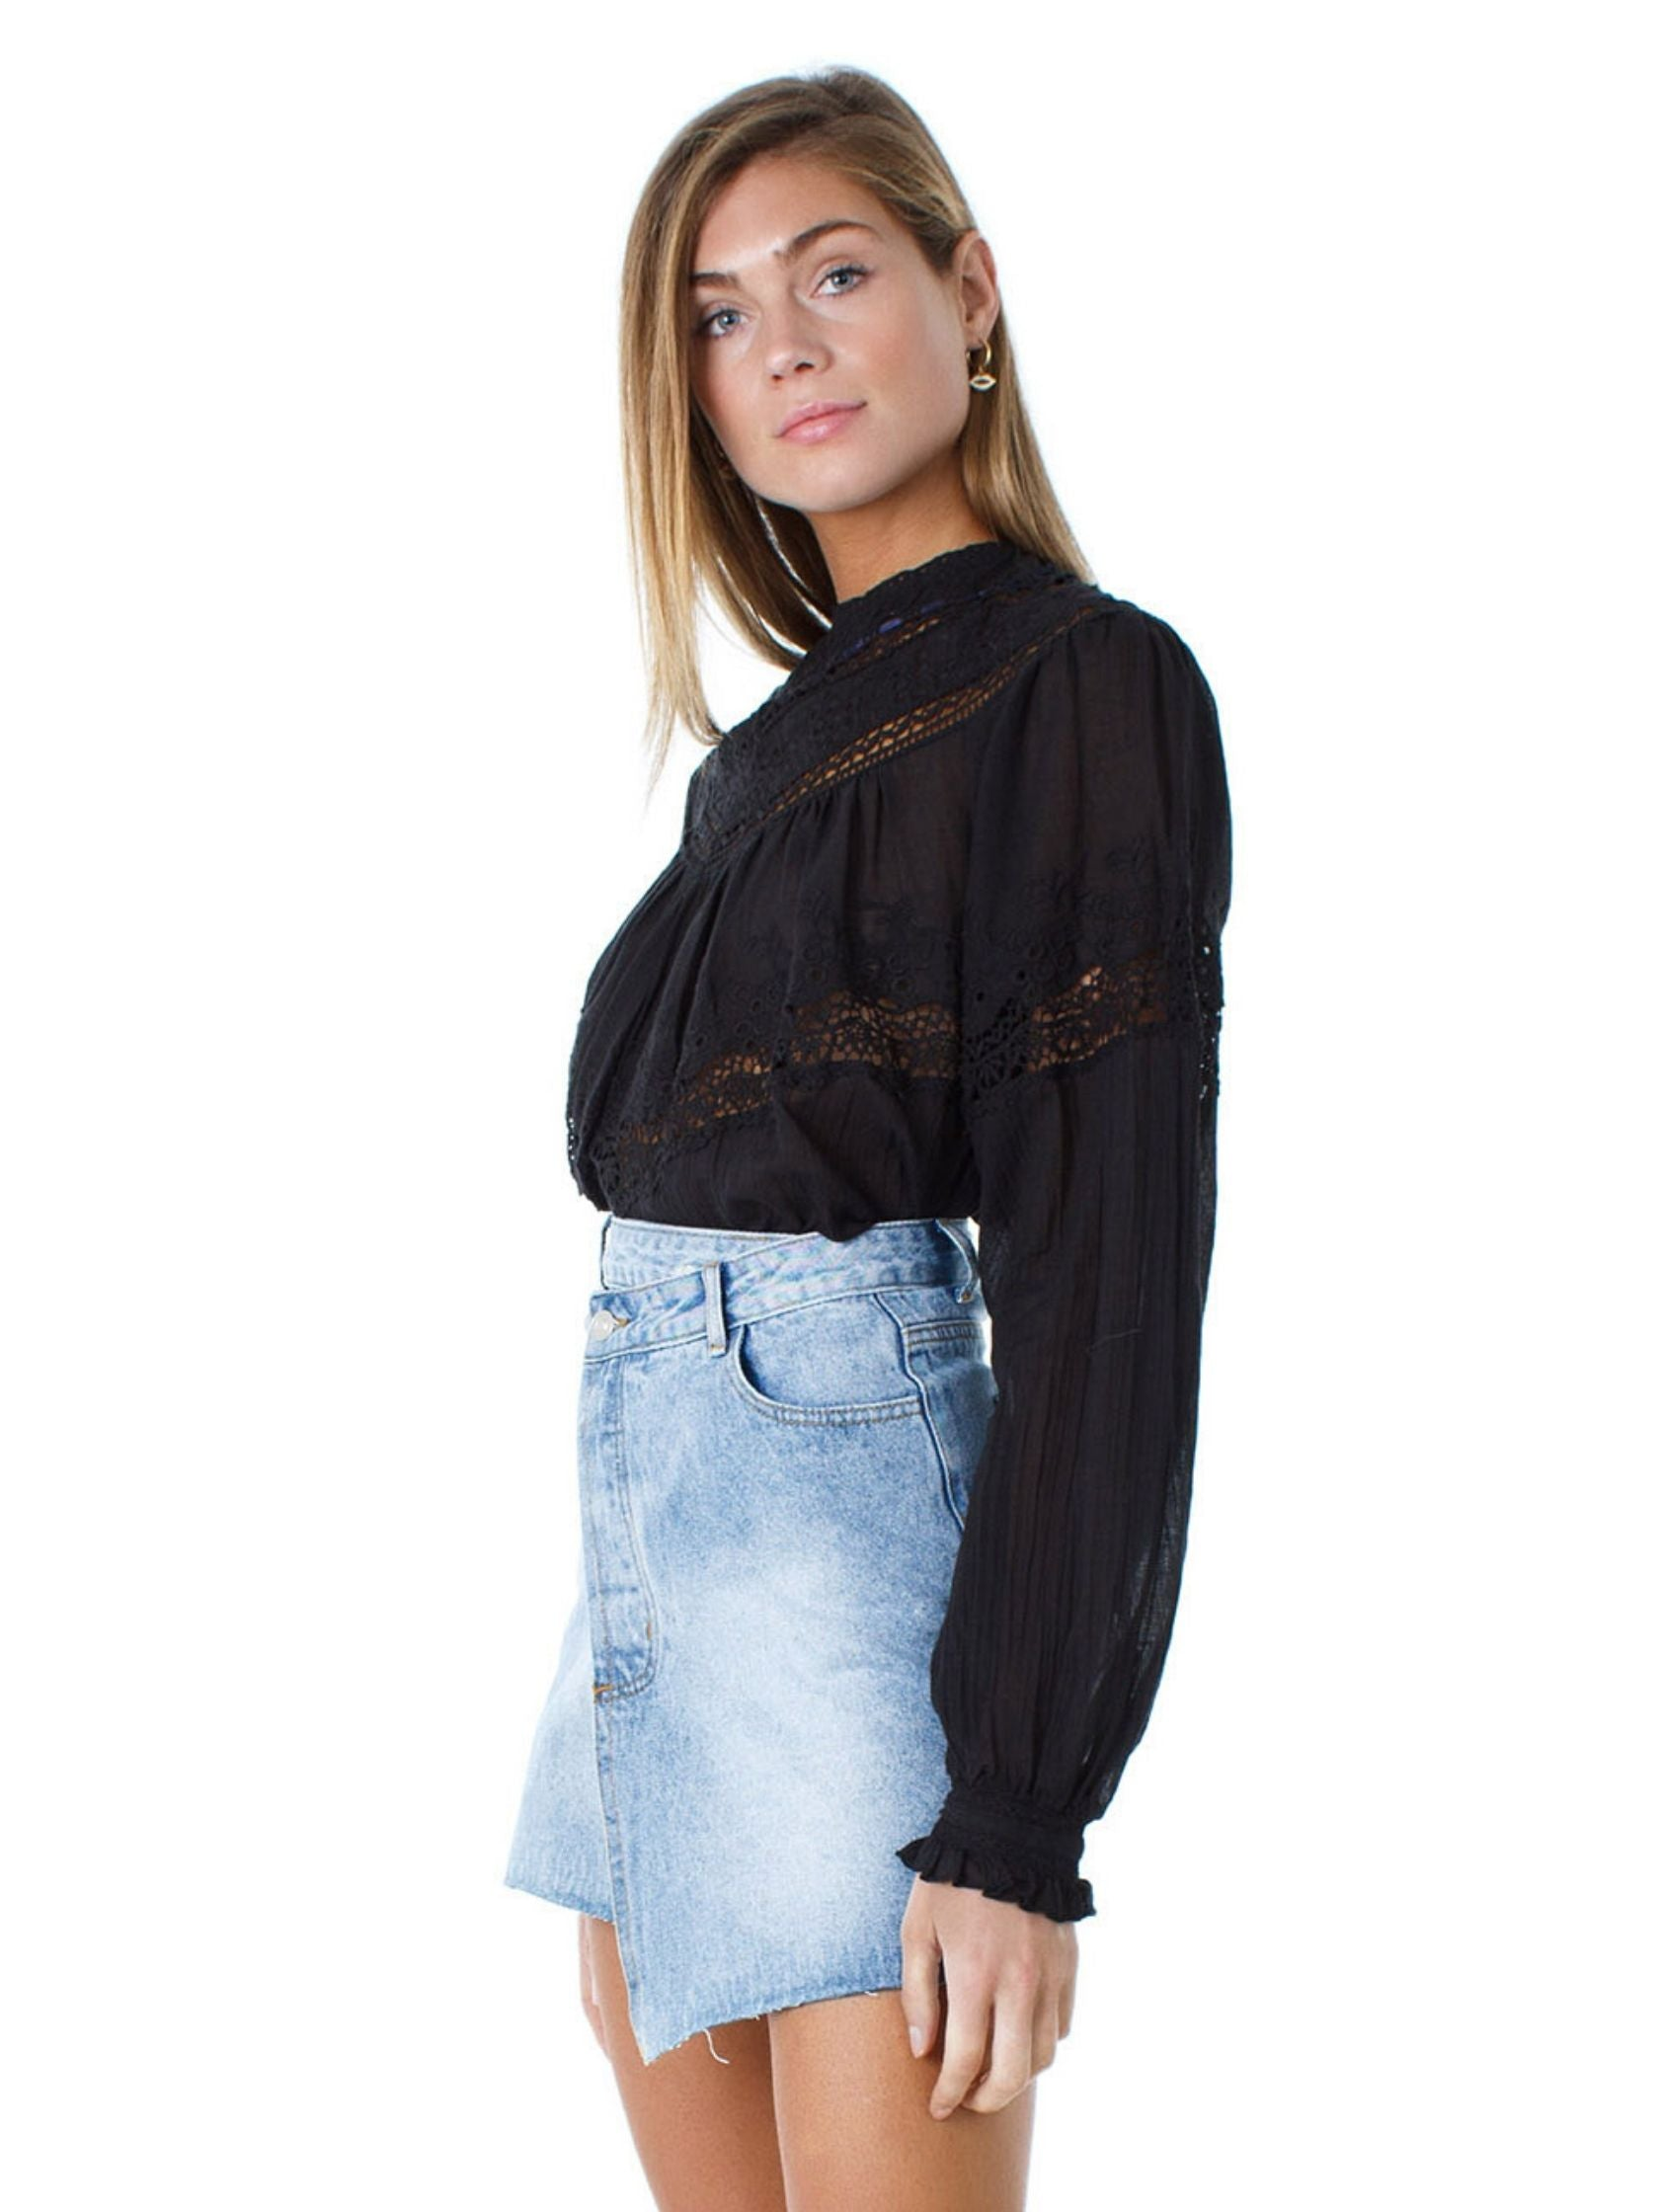 Women wearing a top rental from Free People called Abigail Victorian Top